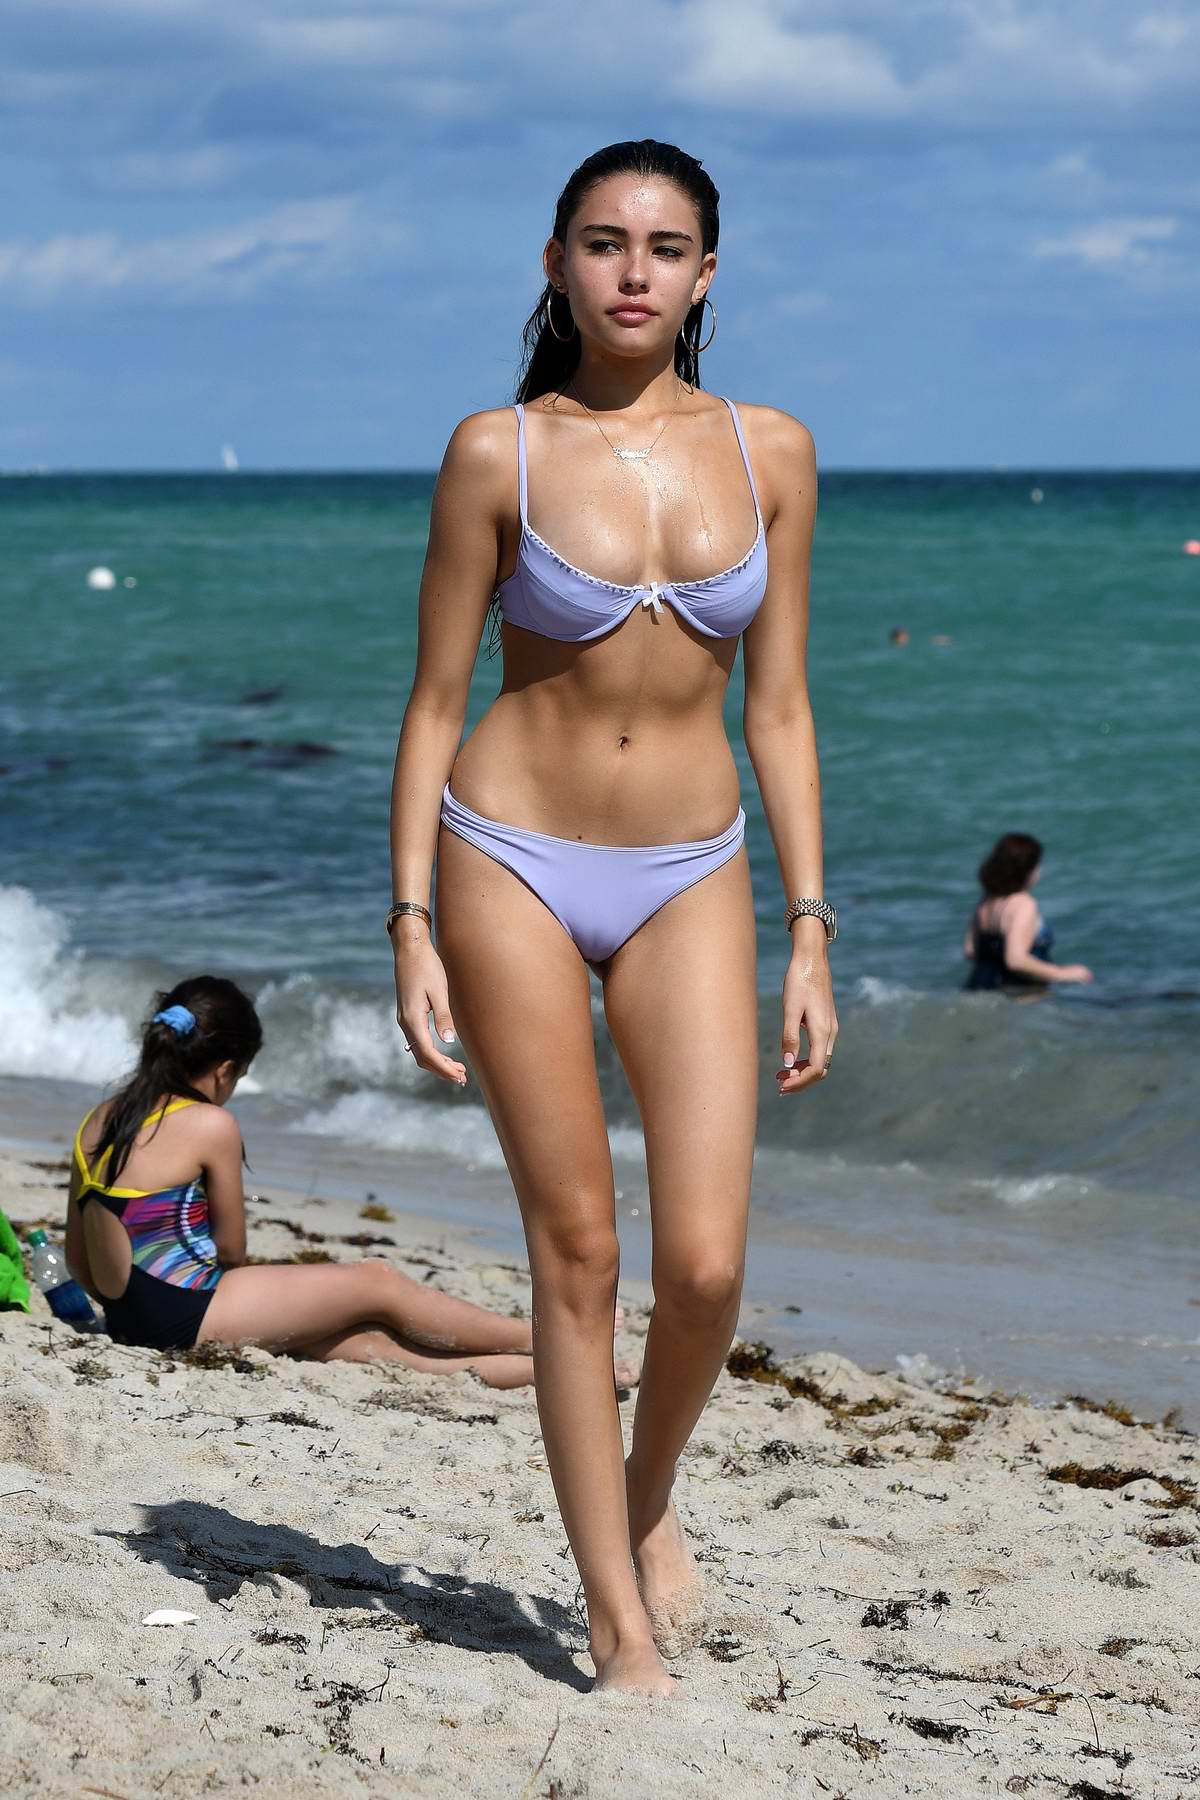 Madison Beer wears a purple bikini as she enjoys another day at the beach in Miami, Florida